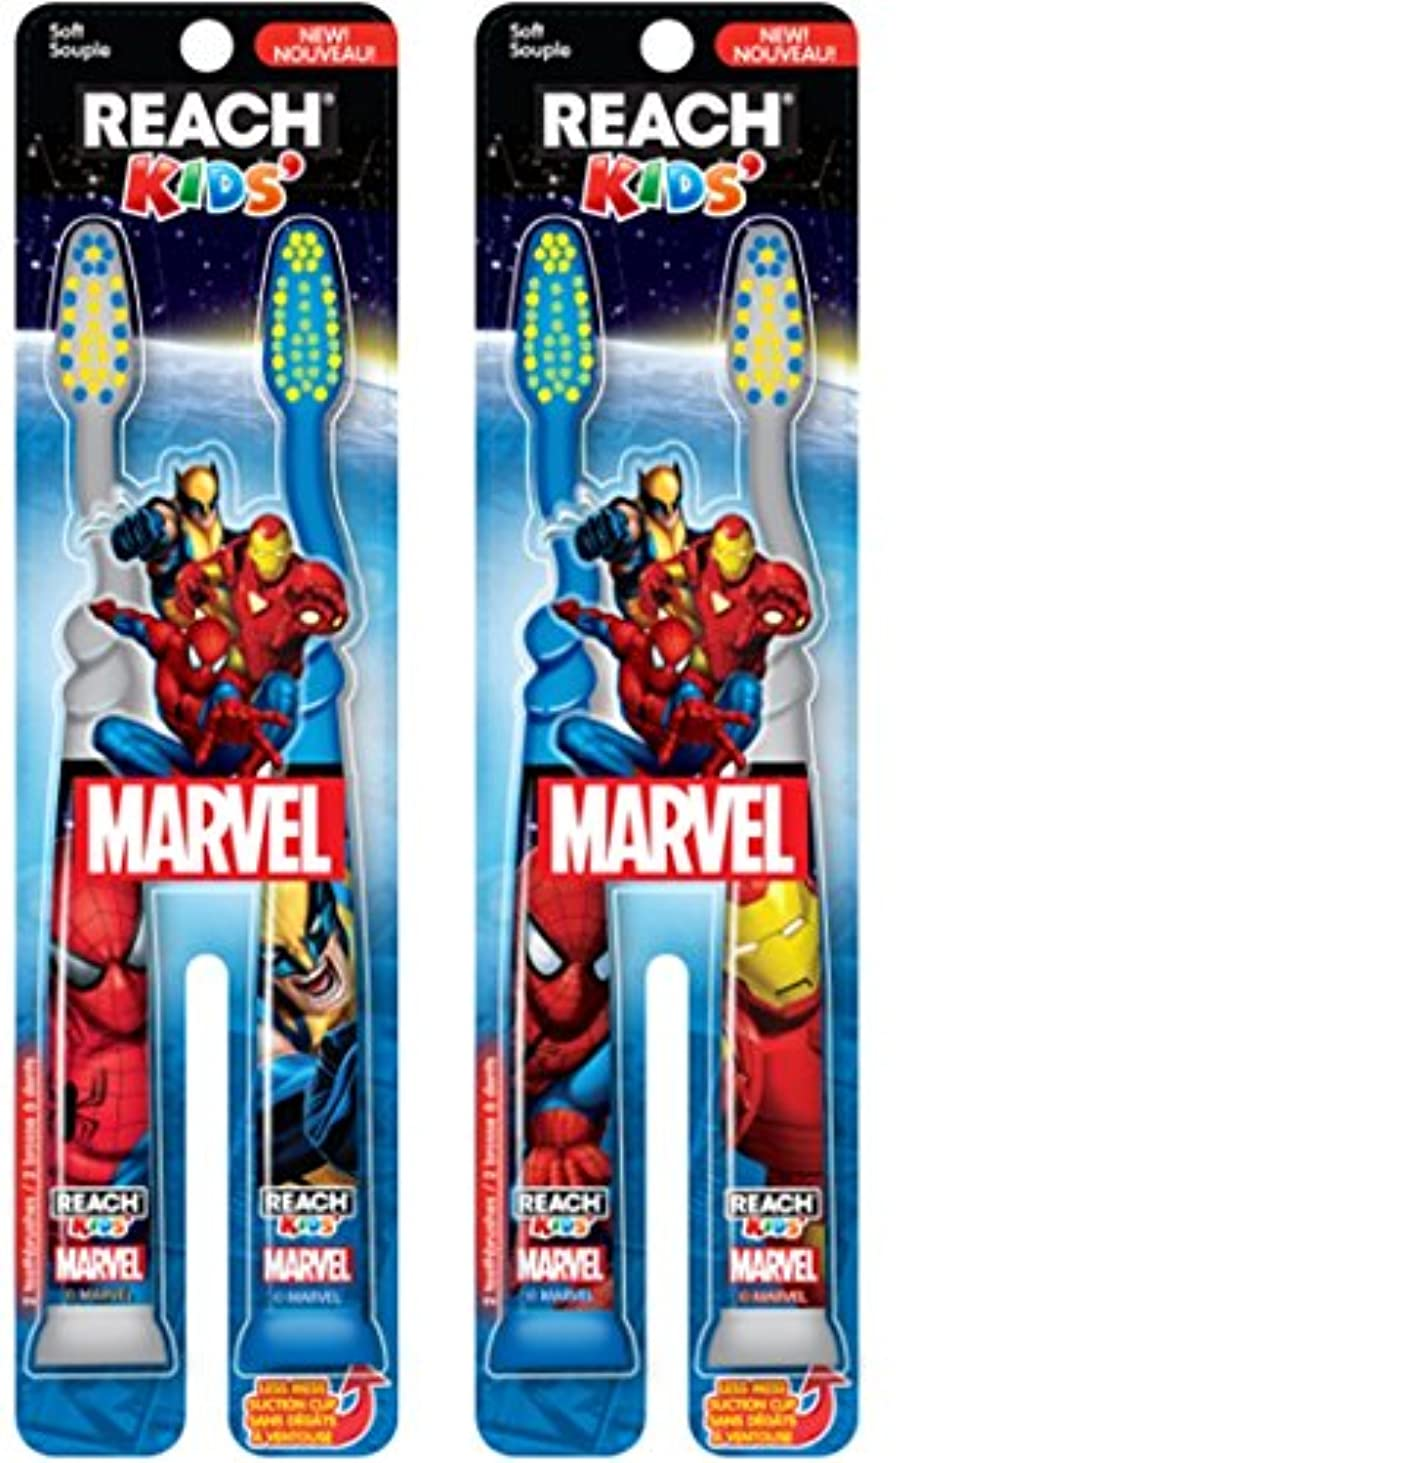 情熱変数構造的Reach Kids Mavel Soft Toothbrush, 2 Count by Reach